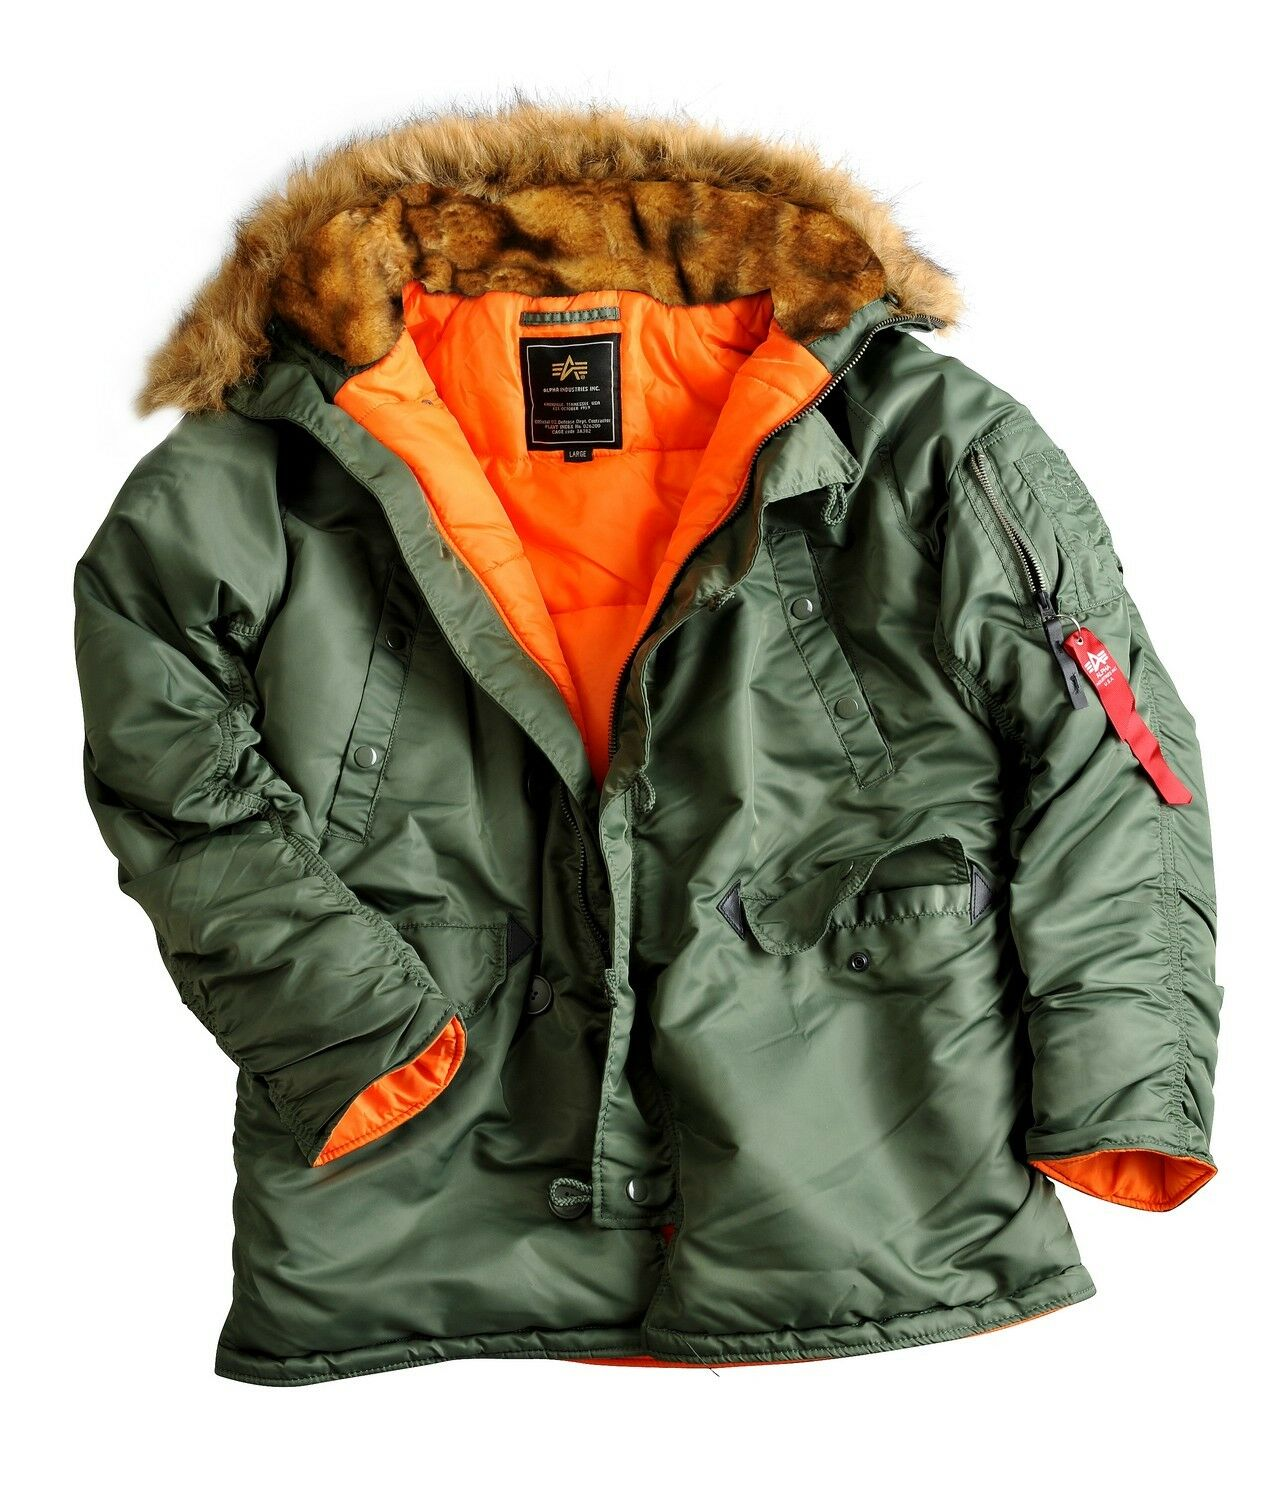 Klamotten Box Alpha Industries N3b Vf59 Mens Winter Jacket Parka Coat